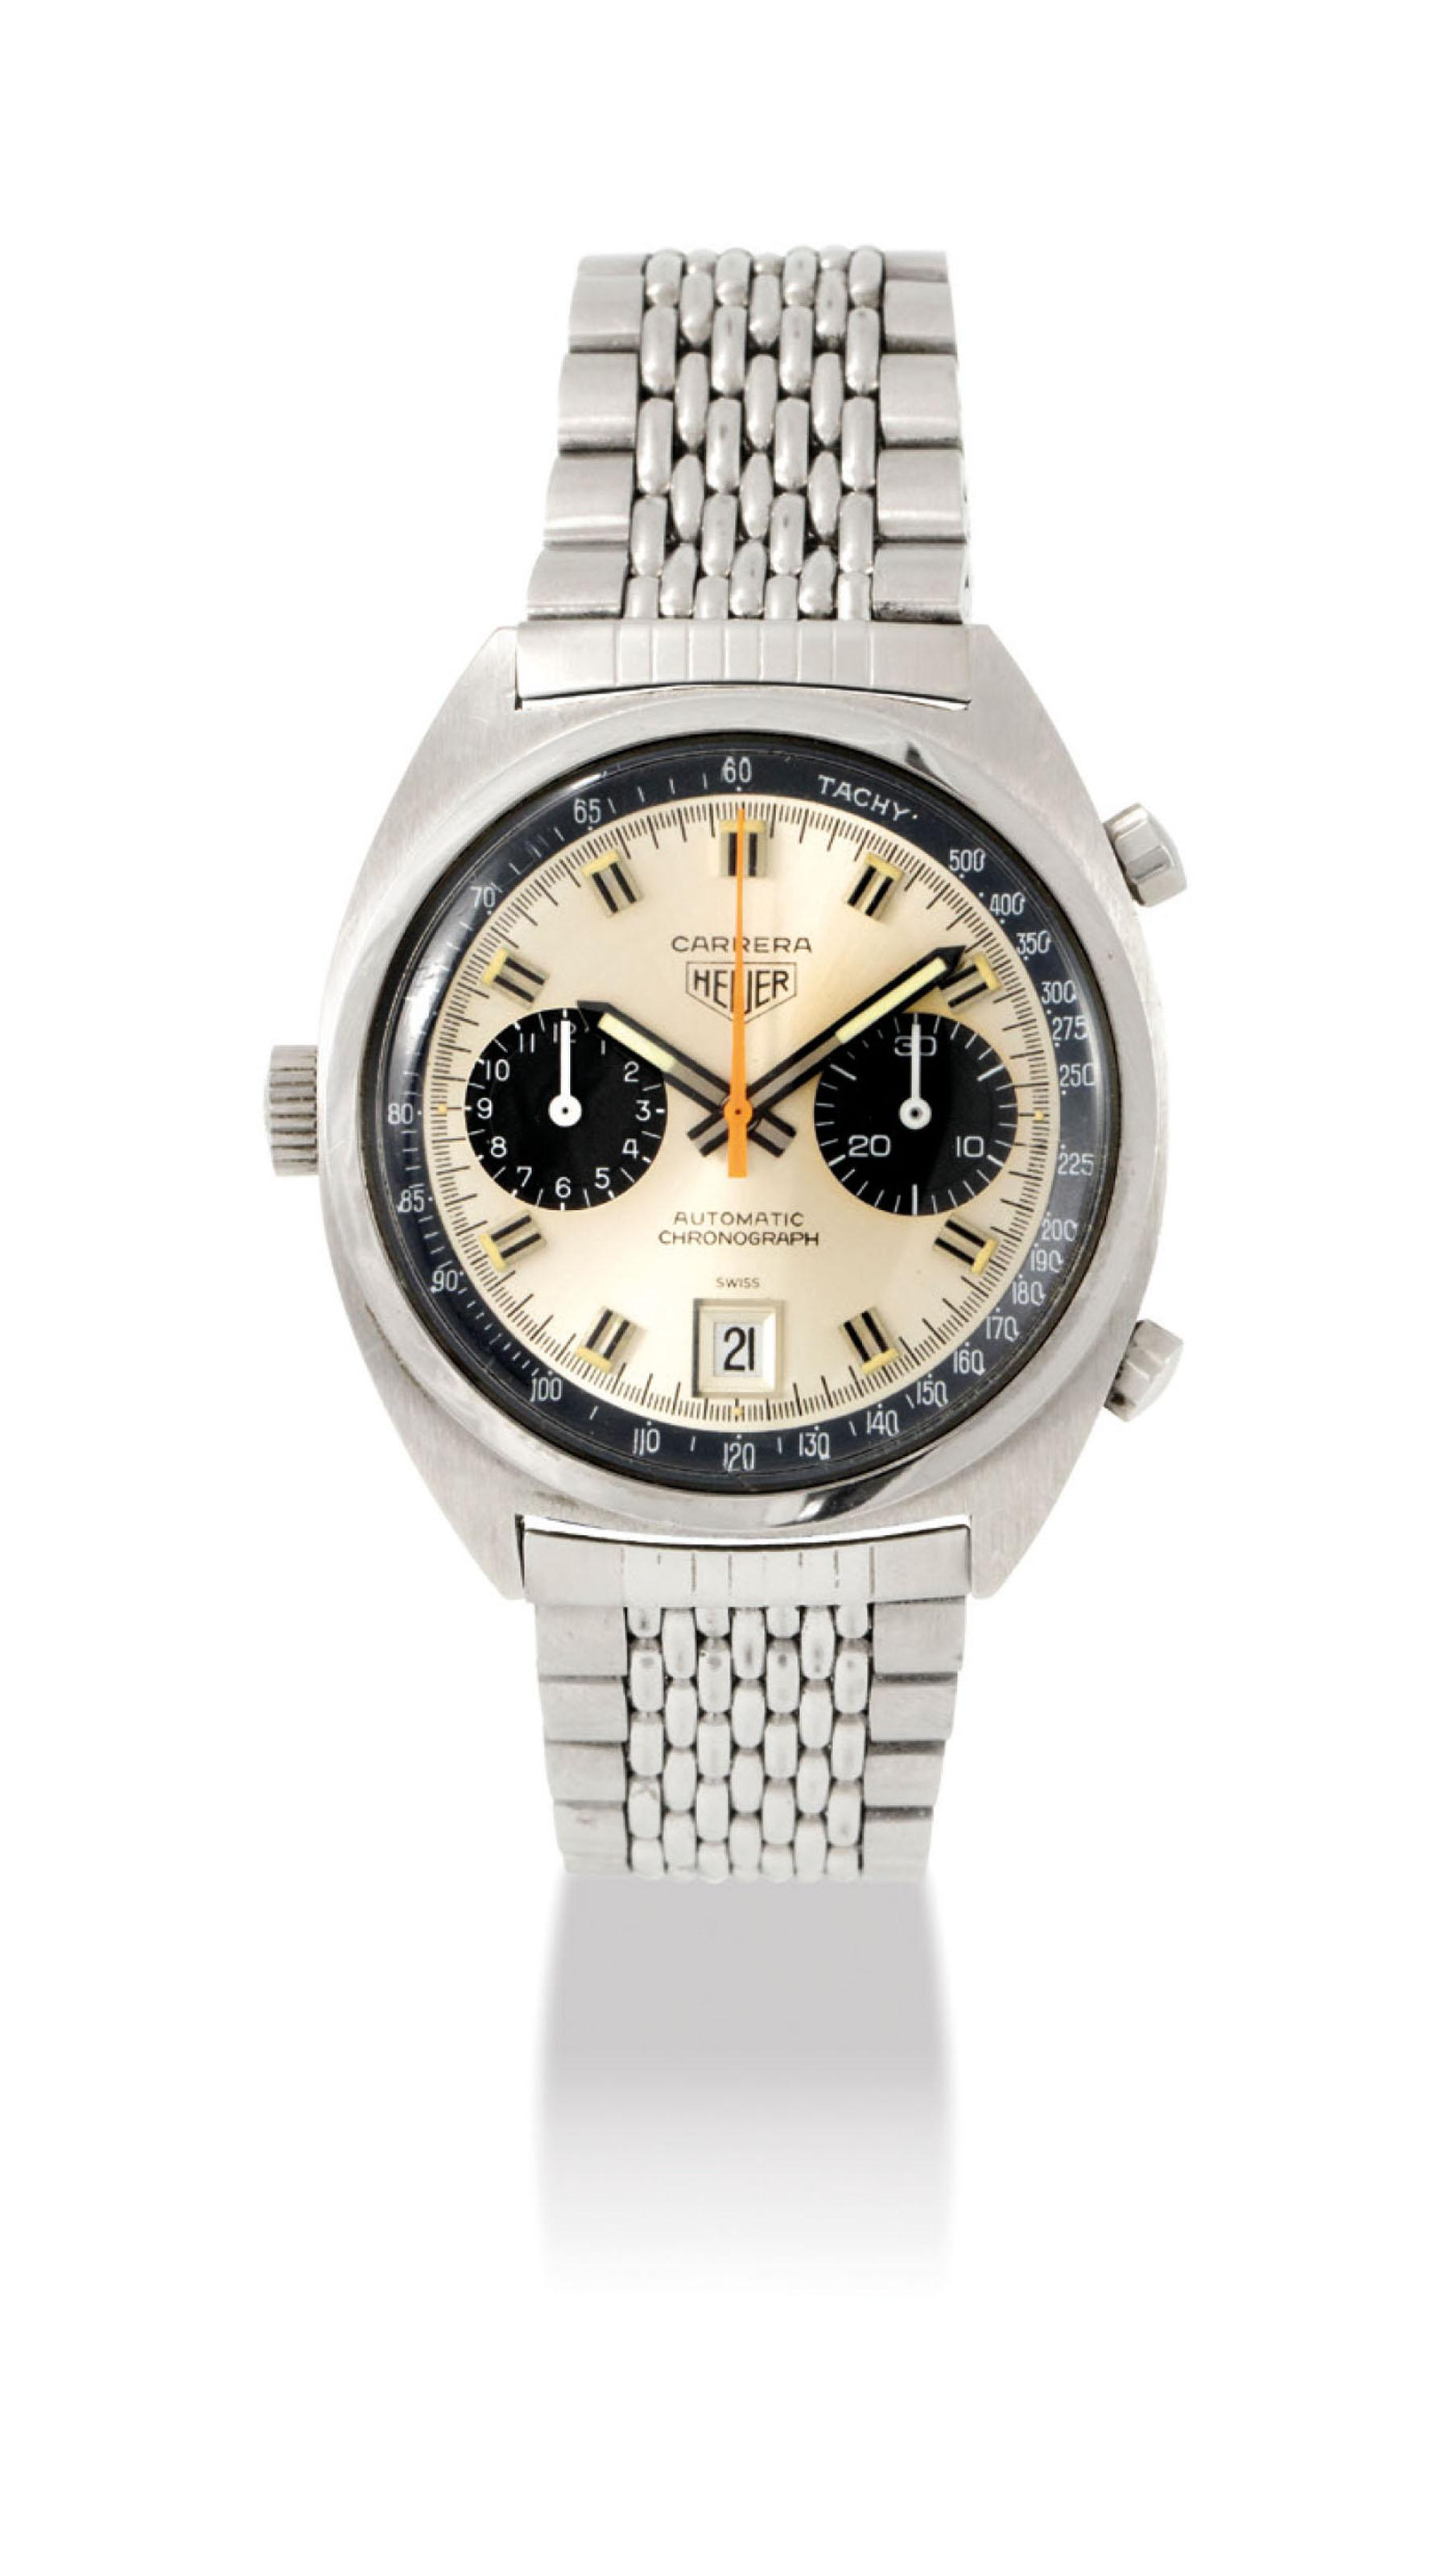 91d041a55e59 Auction results for heuer carrera